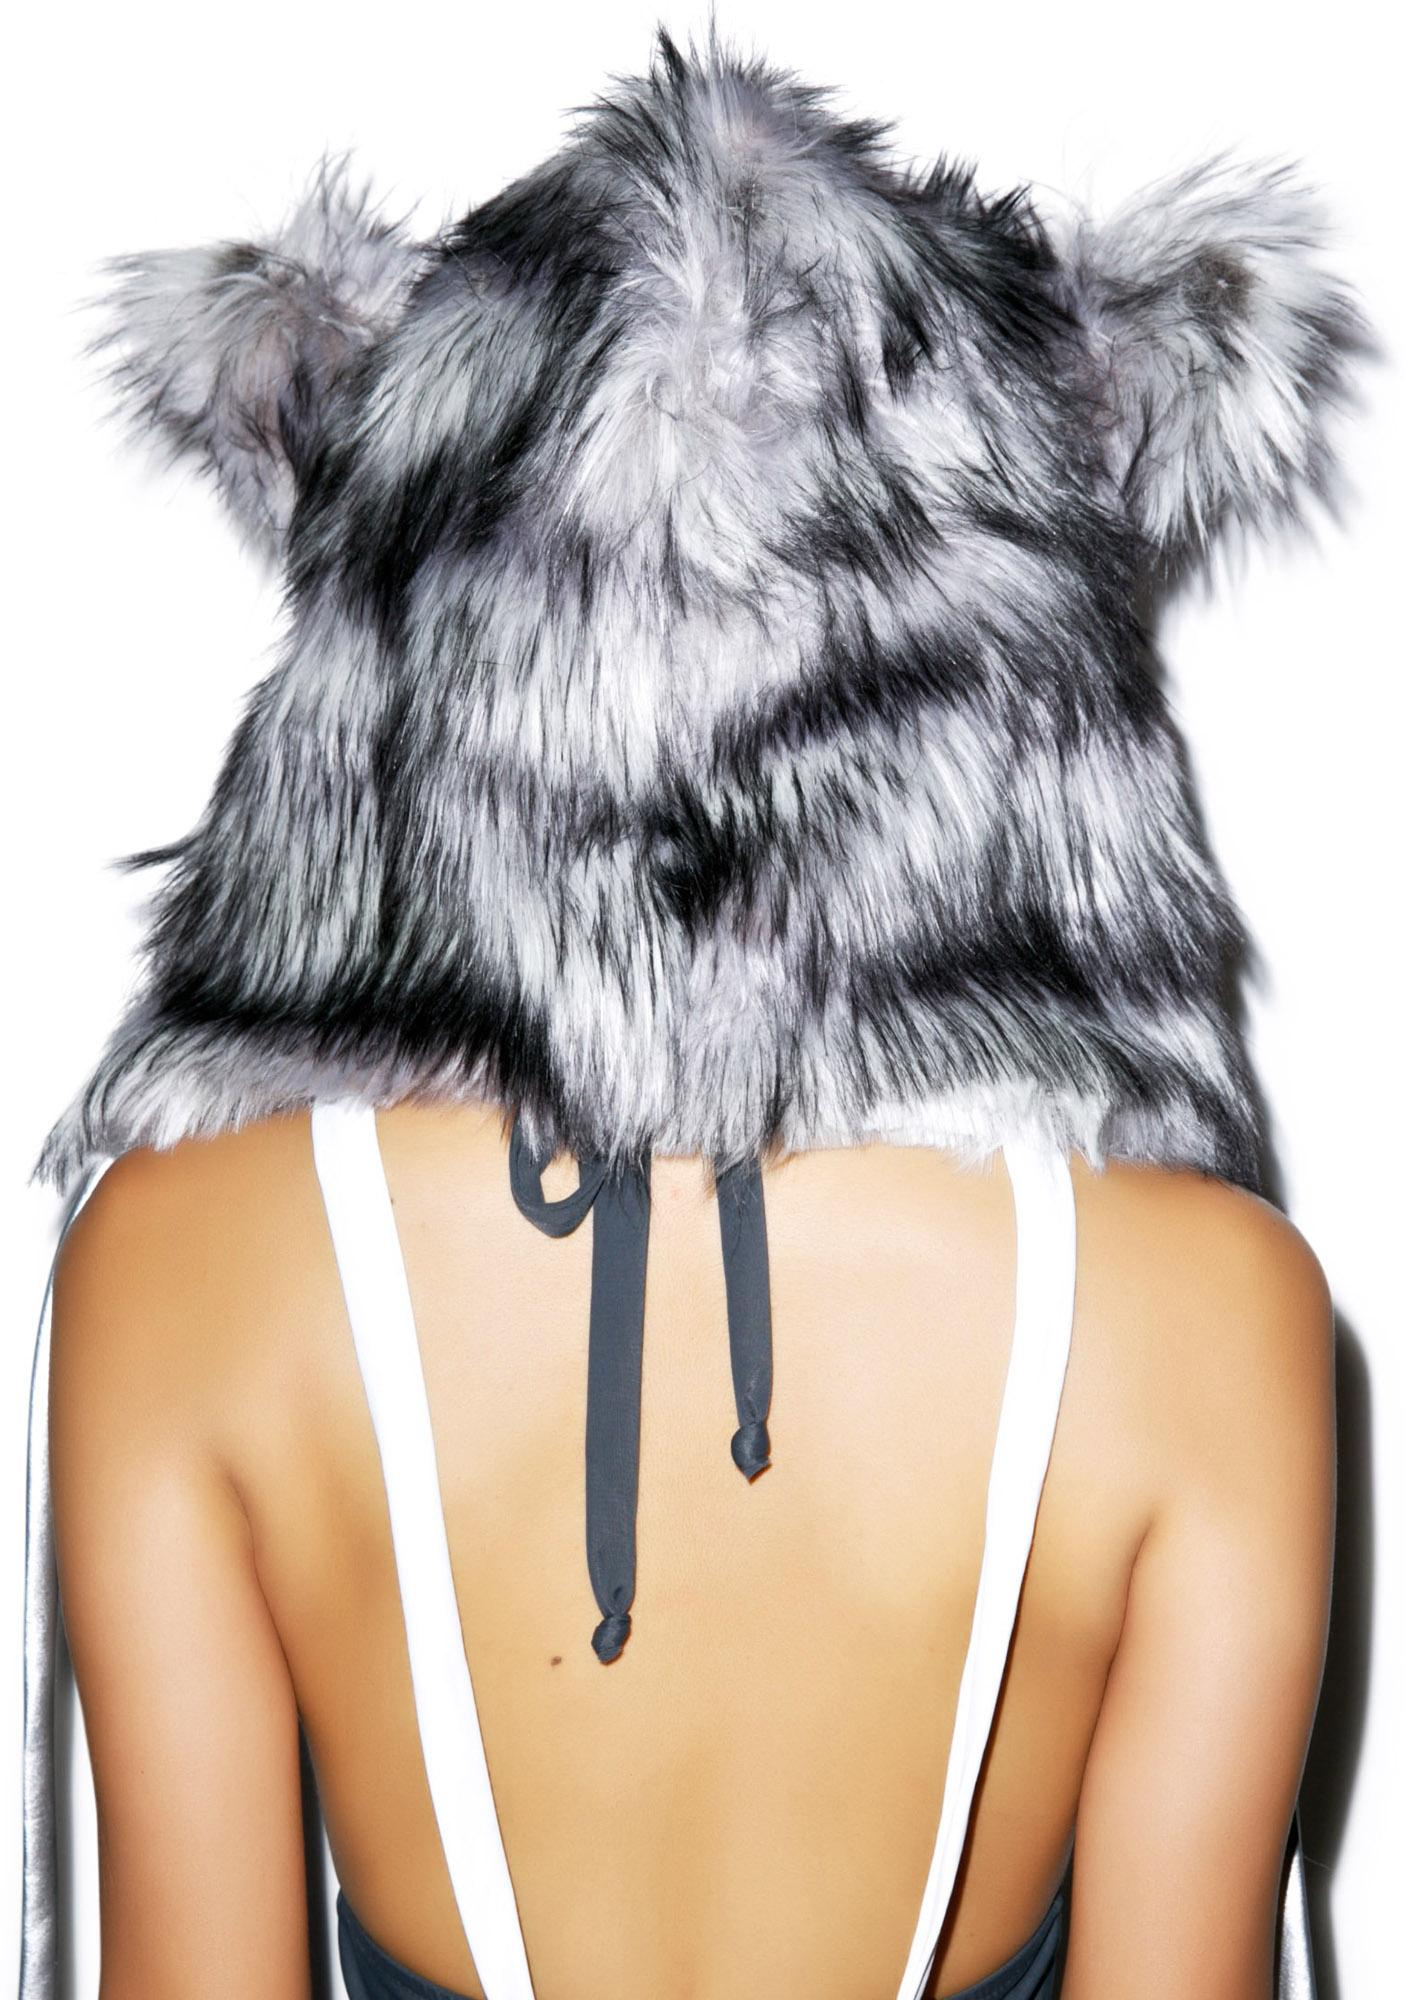 J Valentine Big Bad Wolf Hood